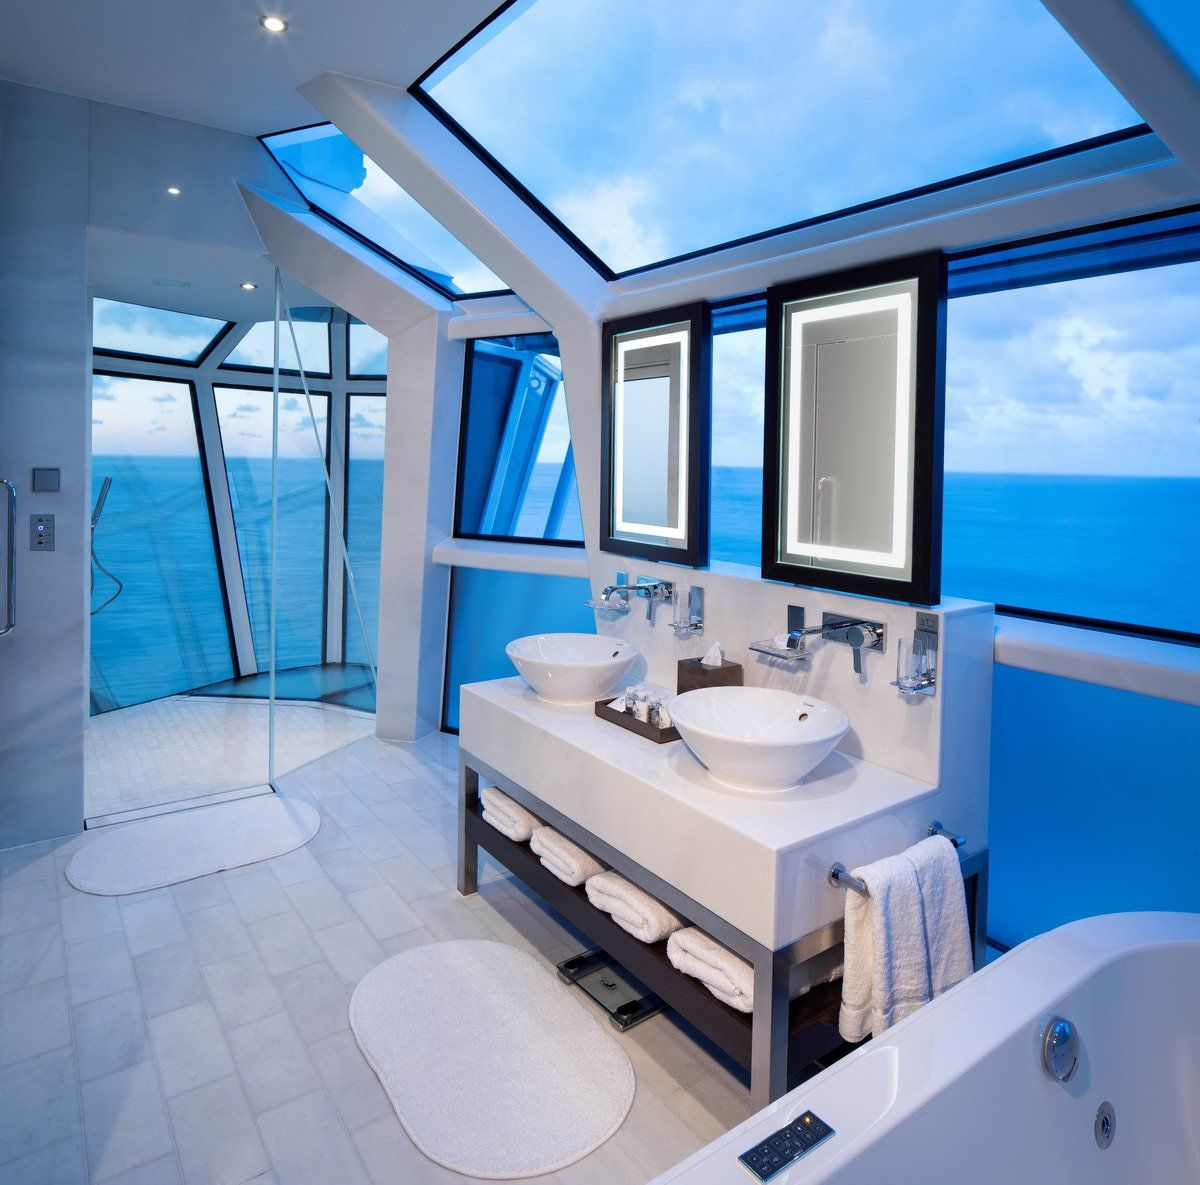 Luxury #Cruise #Bathroom Over the #Ocean #Sea #Boat | aspirational ...